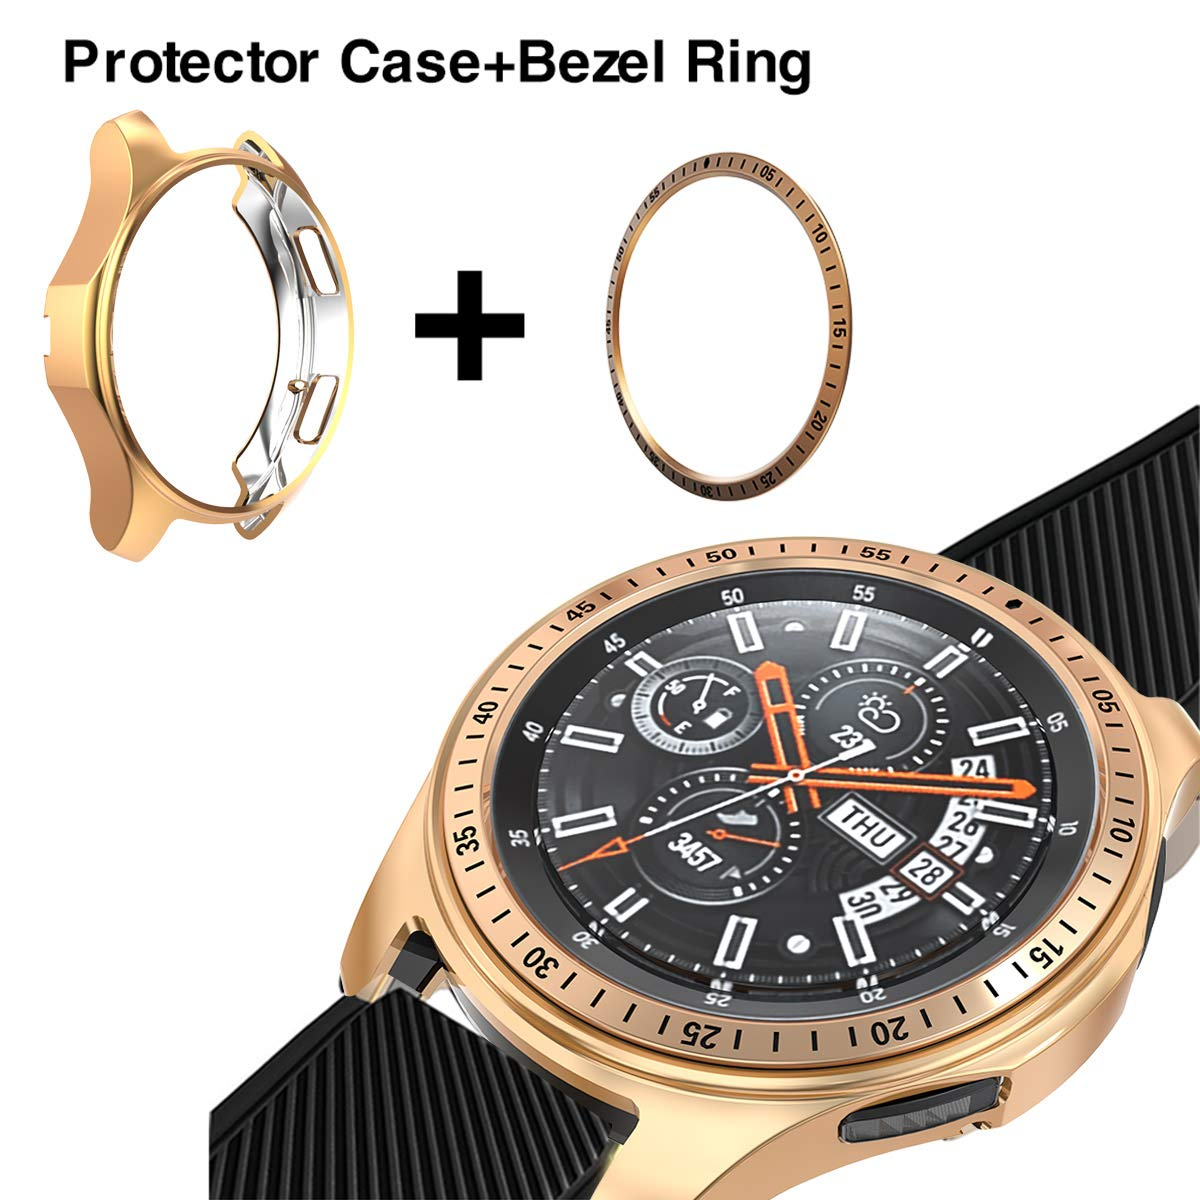 [2 Pack] JZK Samsung Galaxy Watch 46mm/Gear S3 Frontier & Classic Bezel Ring,Adhesive Cover Anti Scratch & Collision Protector Bezel Loop + Protector Case for Galaxy Watch 46mm Smartwatch Accessories by JZK